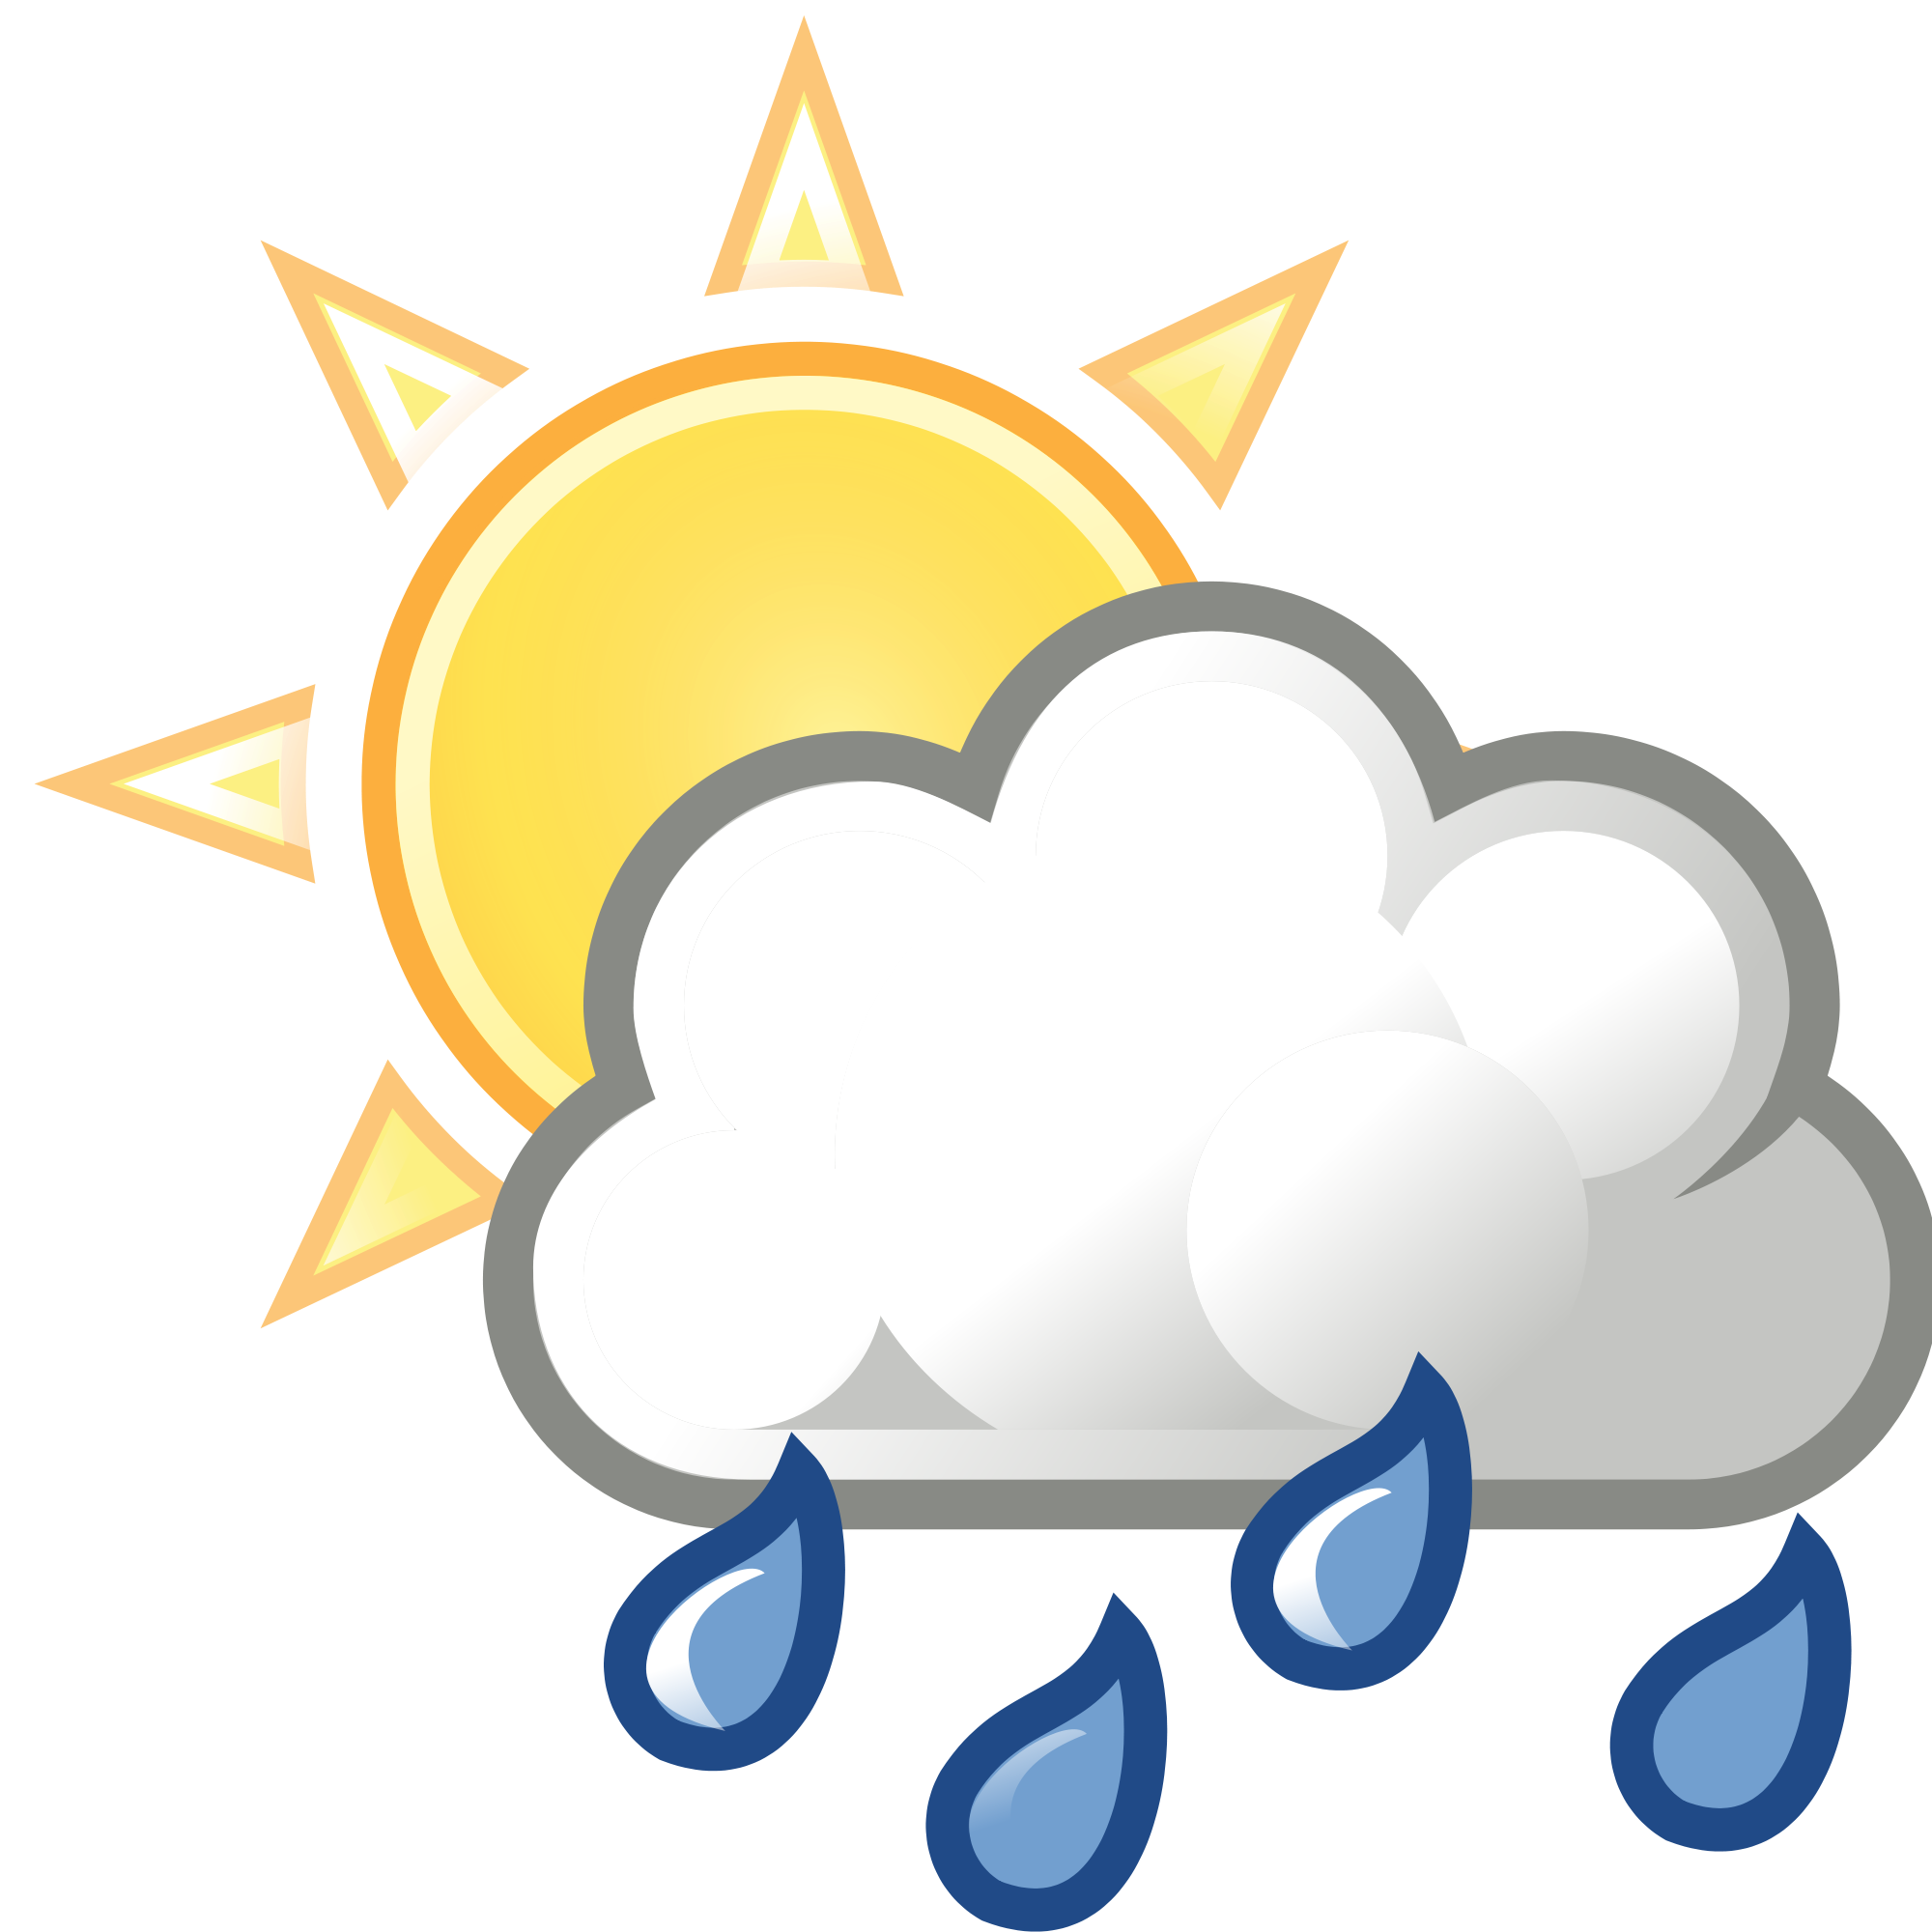 Clouds covering the sun clipart clip art free download File:Weather-sun-clouds-rain.svg - Wikimedia Commons clip art free download